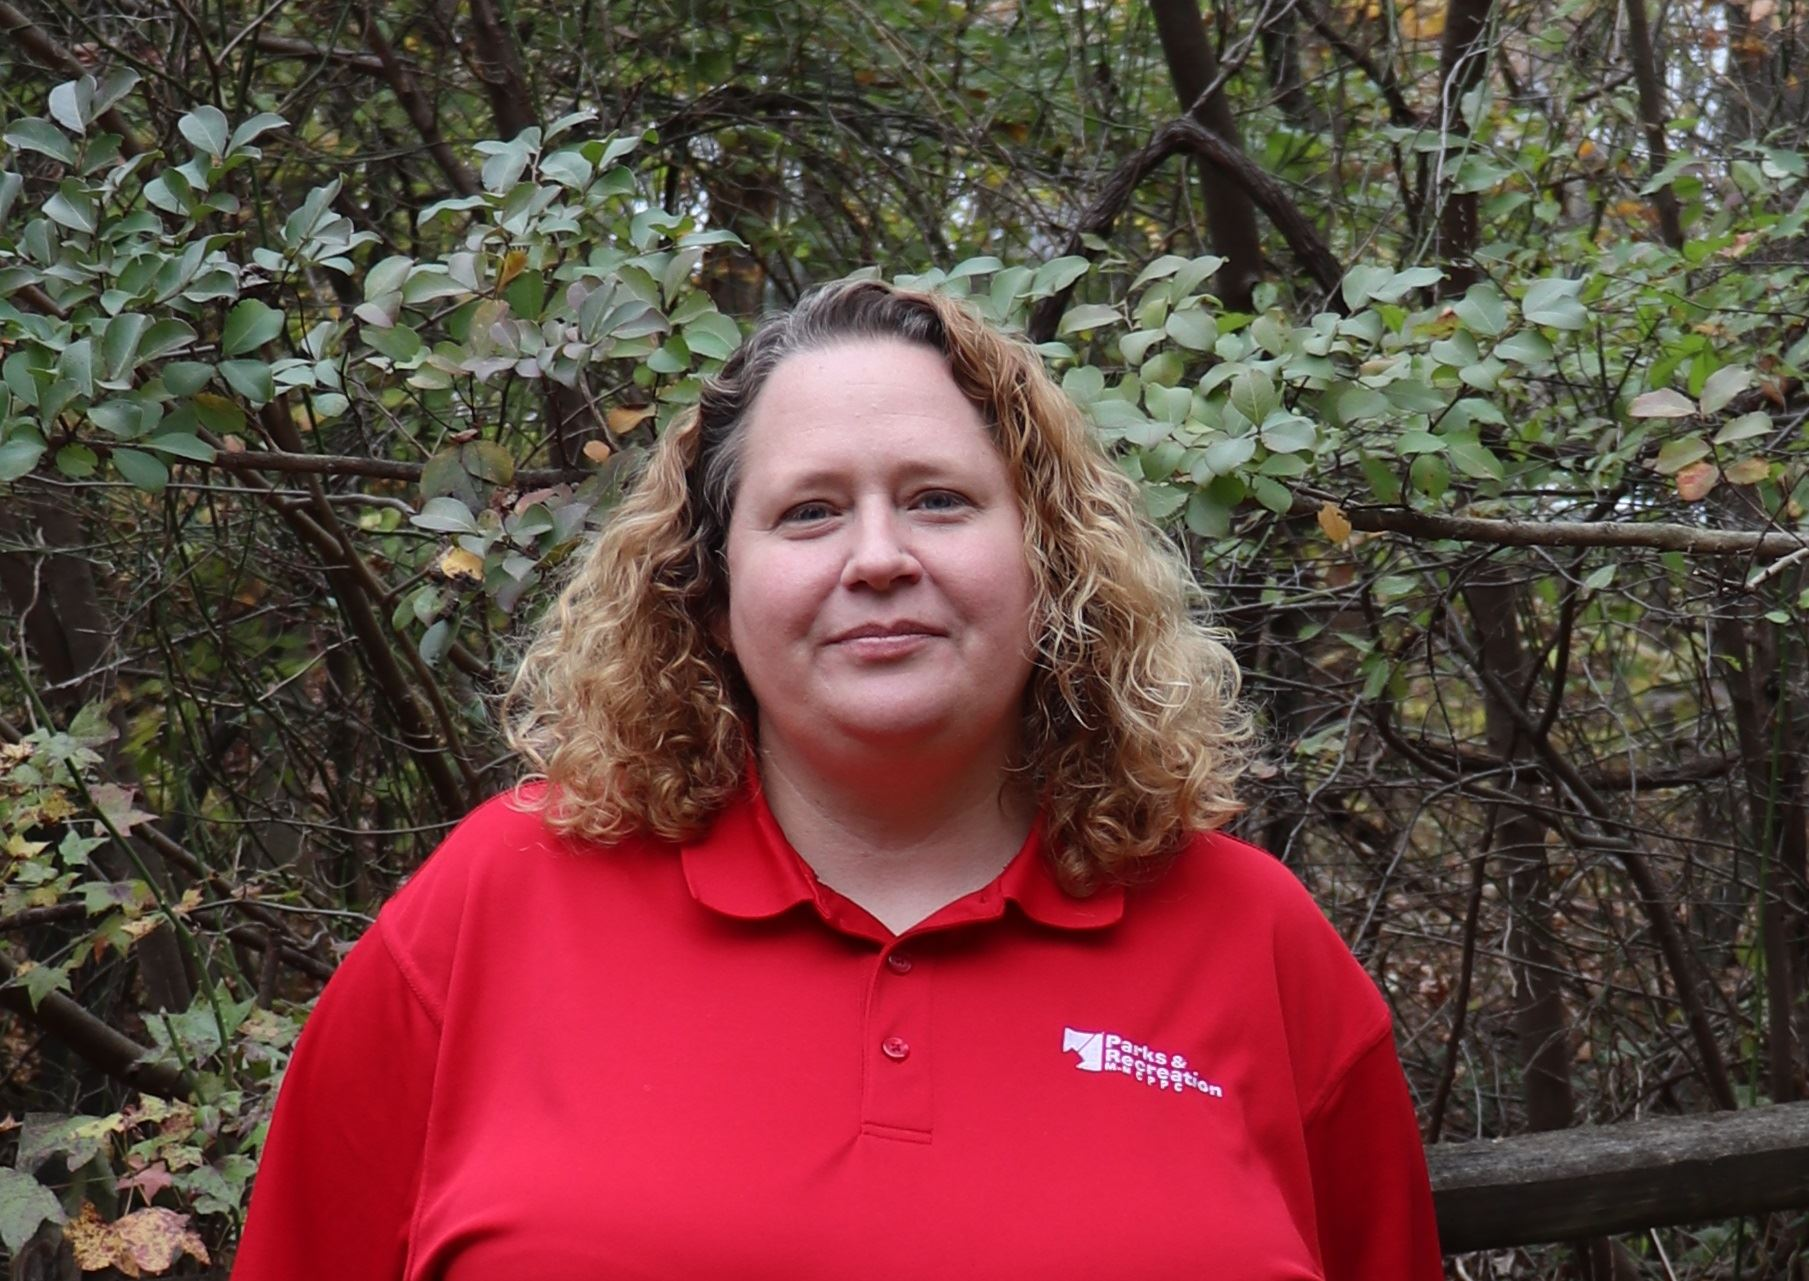 MNCPPC staff Nicole Patterson smiling and wearing a red shirt in front of a wooded background.